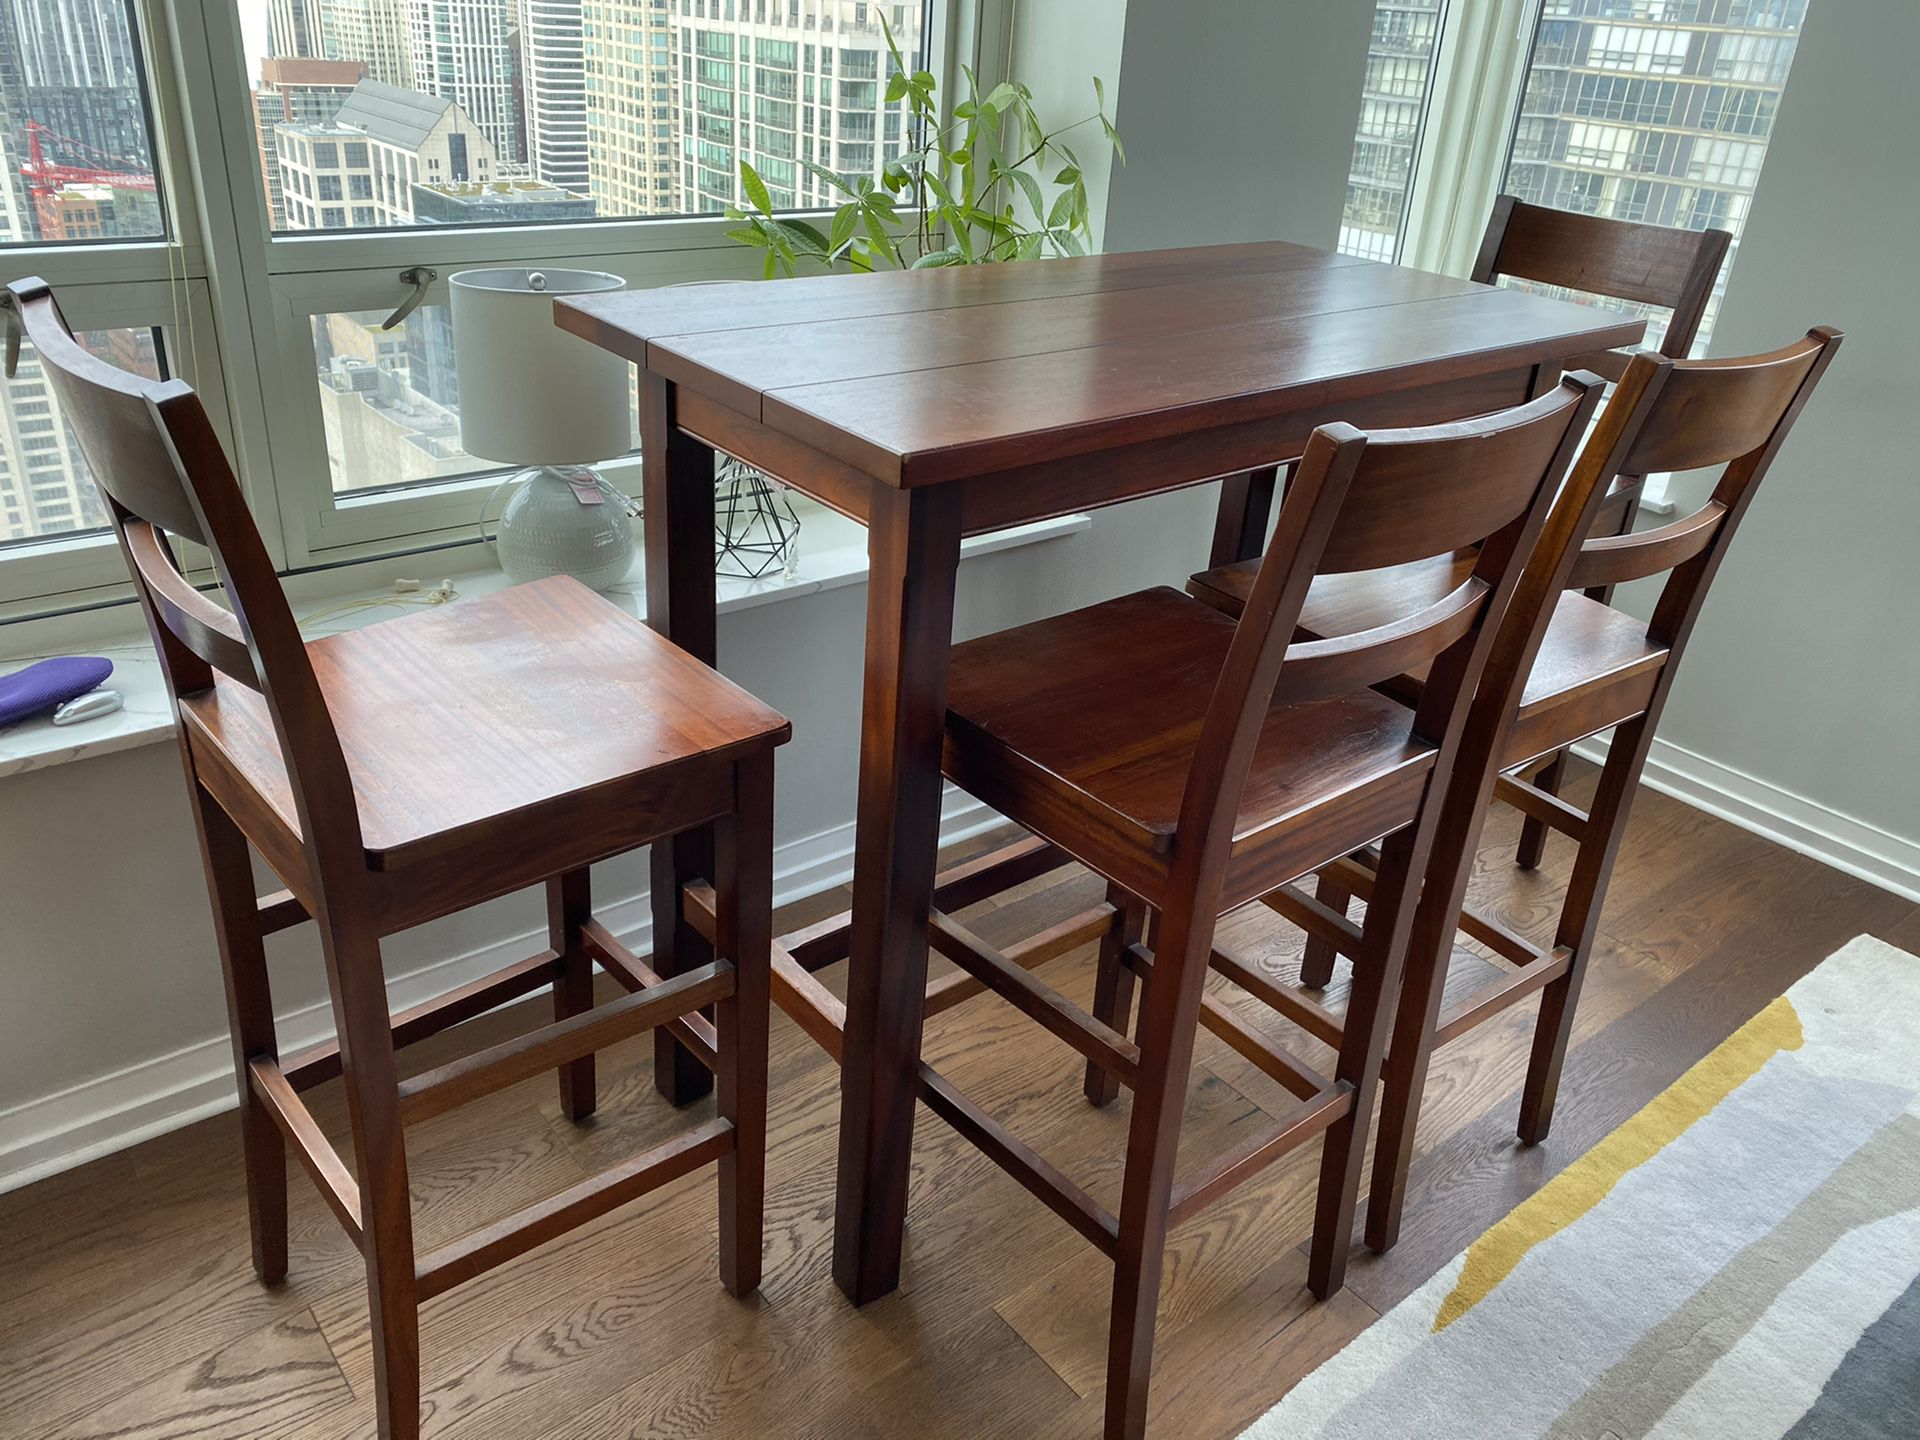 Crate And Barrel Havana Solid Mahogany, Used Dining Room Chairs Chicago